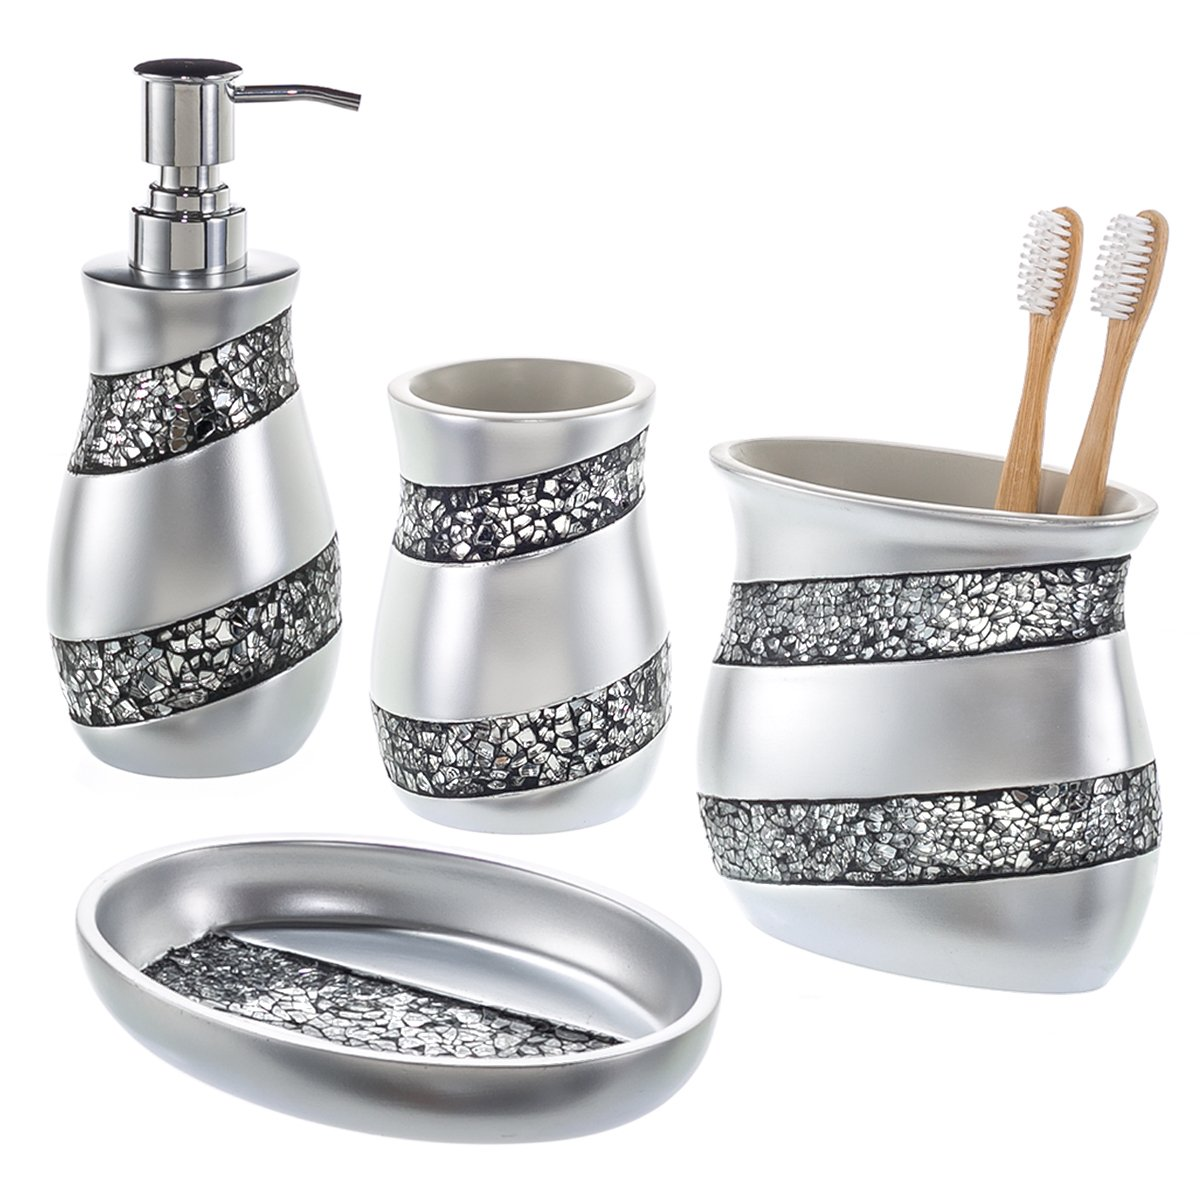 Superieur Amazon.com: Creative Scents Bathroom Accessories Set, 4 Piece Silver Mosaic  Glass Luxury Bathroom Gift Set, Includes Soap Dispenser, Toothbrush Holder,  ...